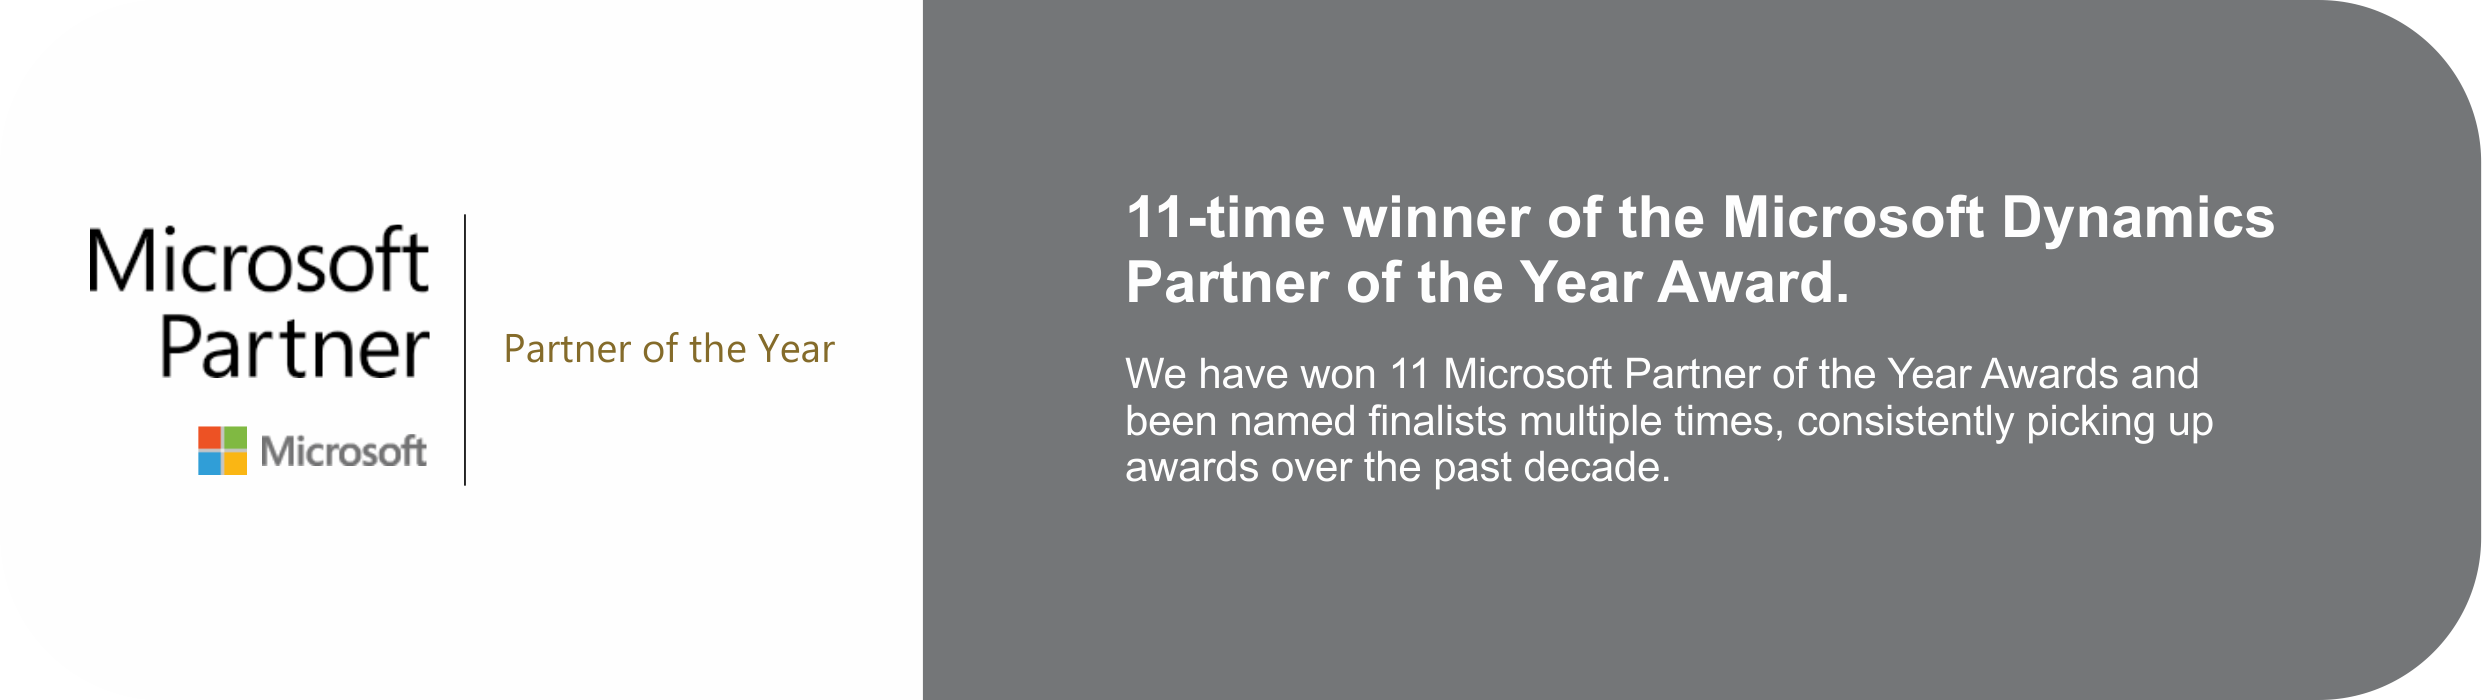 sa.global 11 times winner of the Microsoft Dynamics Partner of the year award